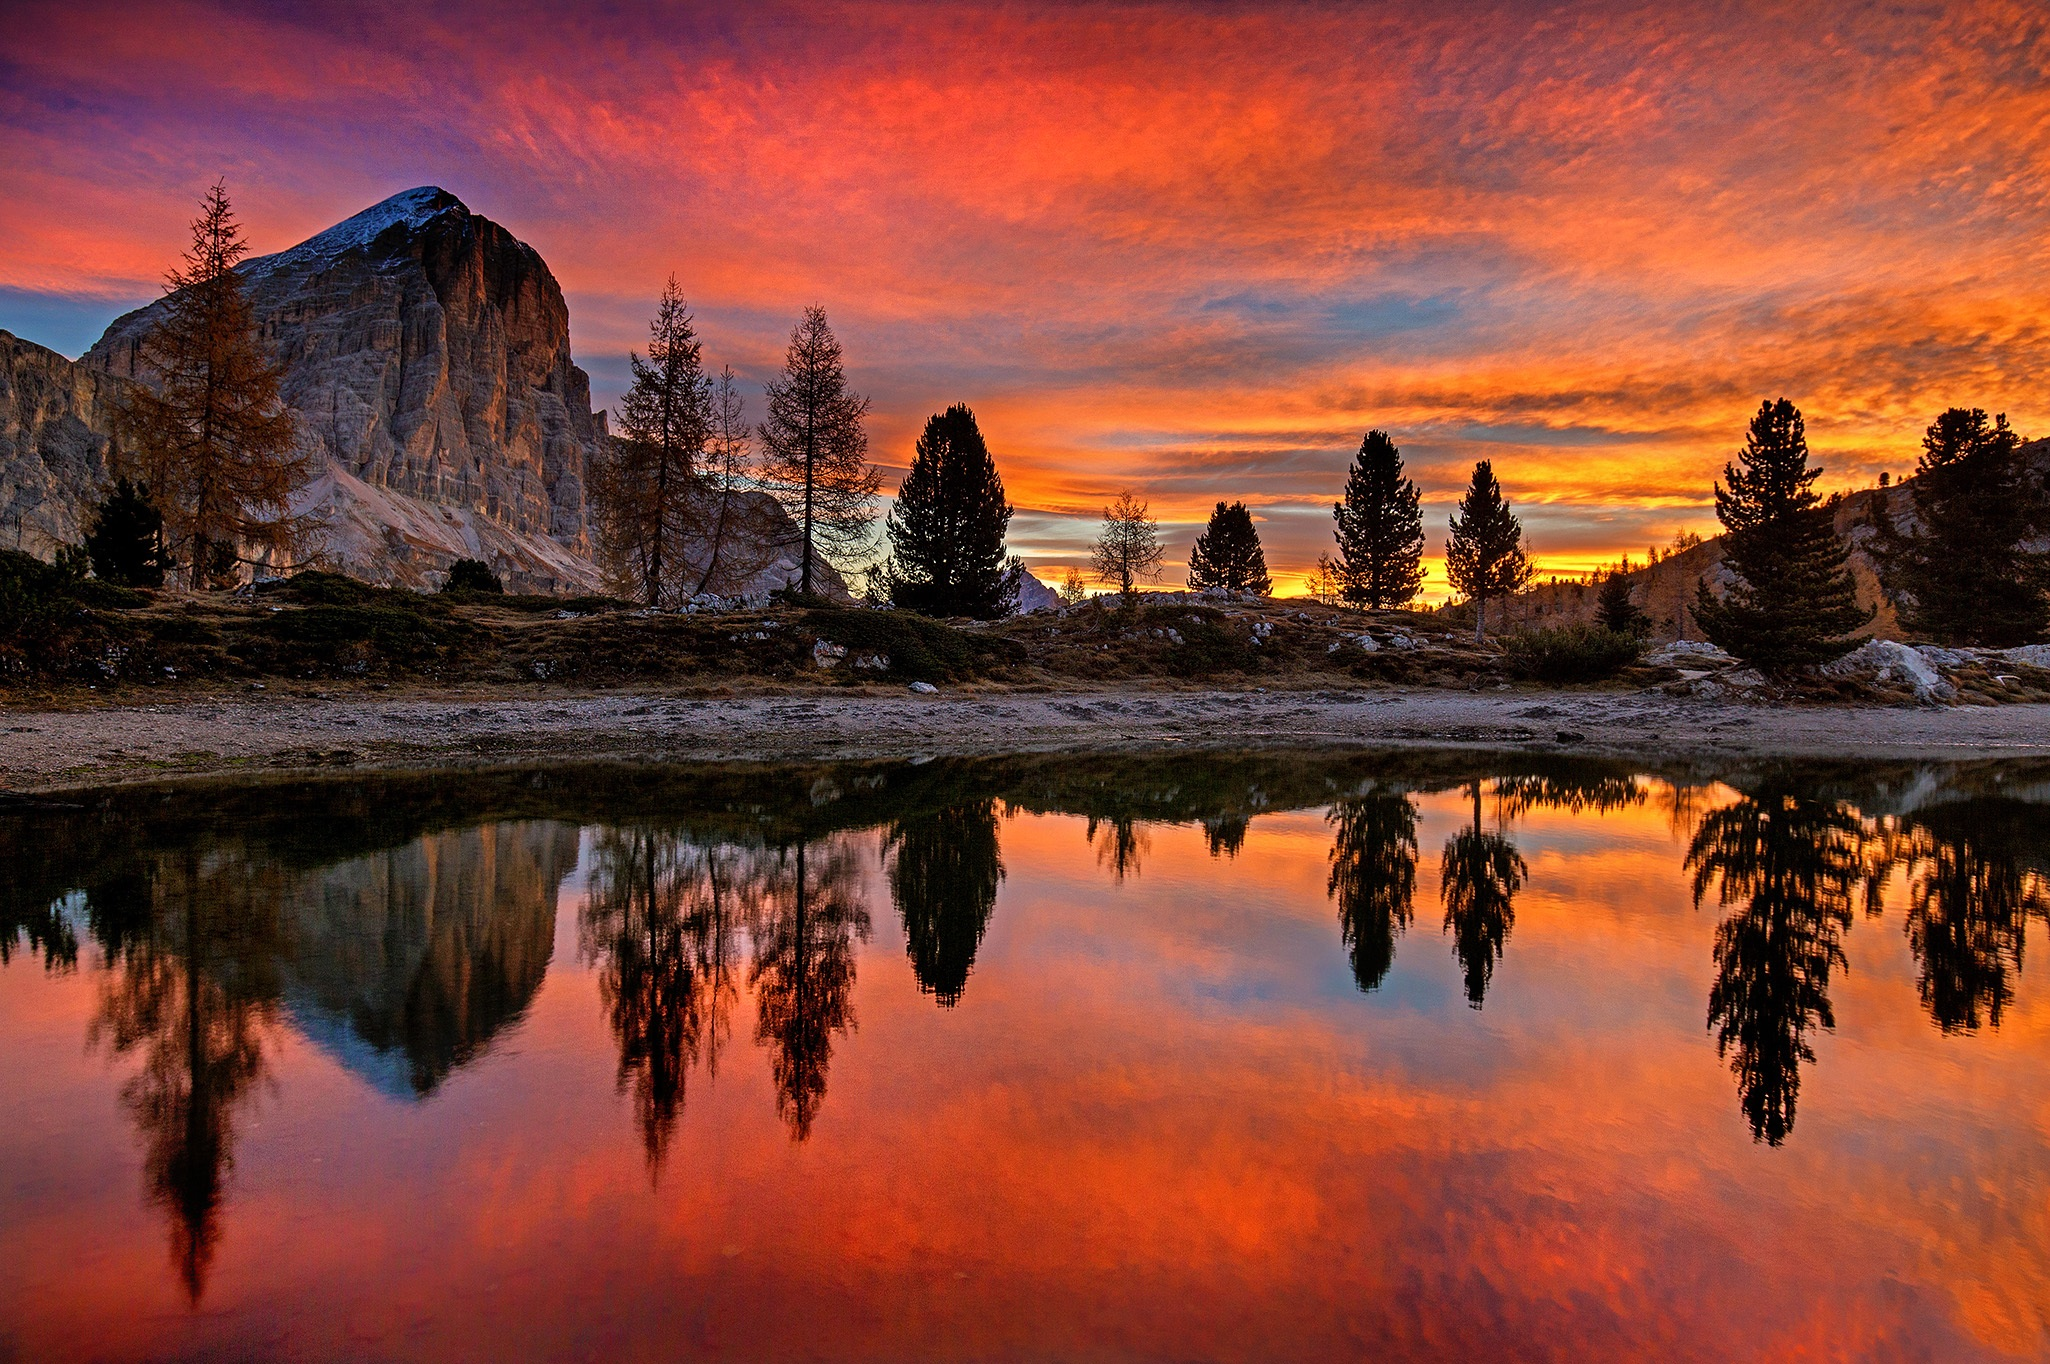 Wallpaper Limides Lake at sunset in the mountains in Italy